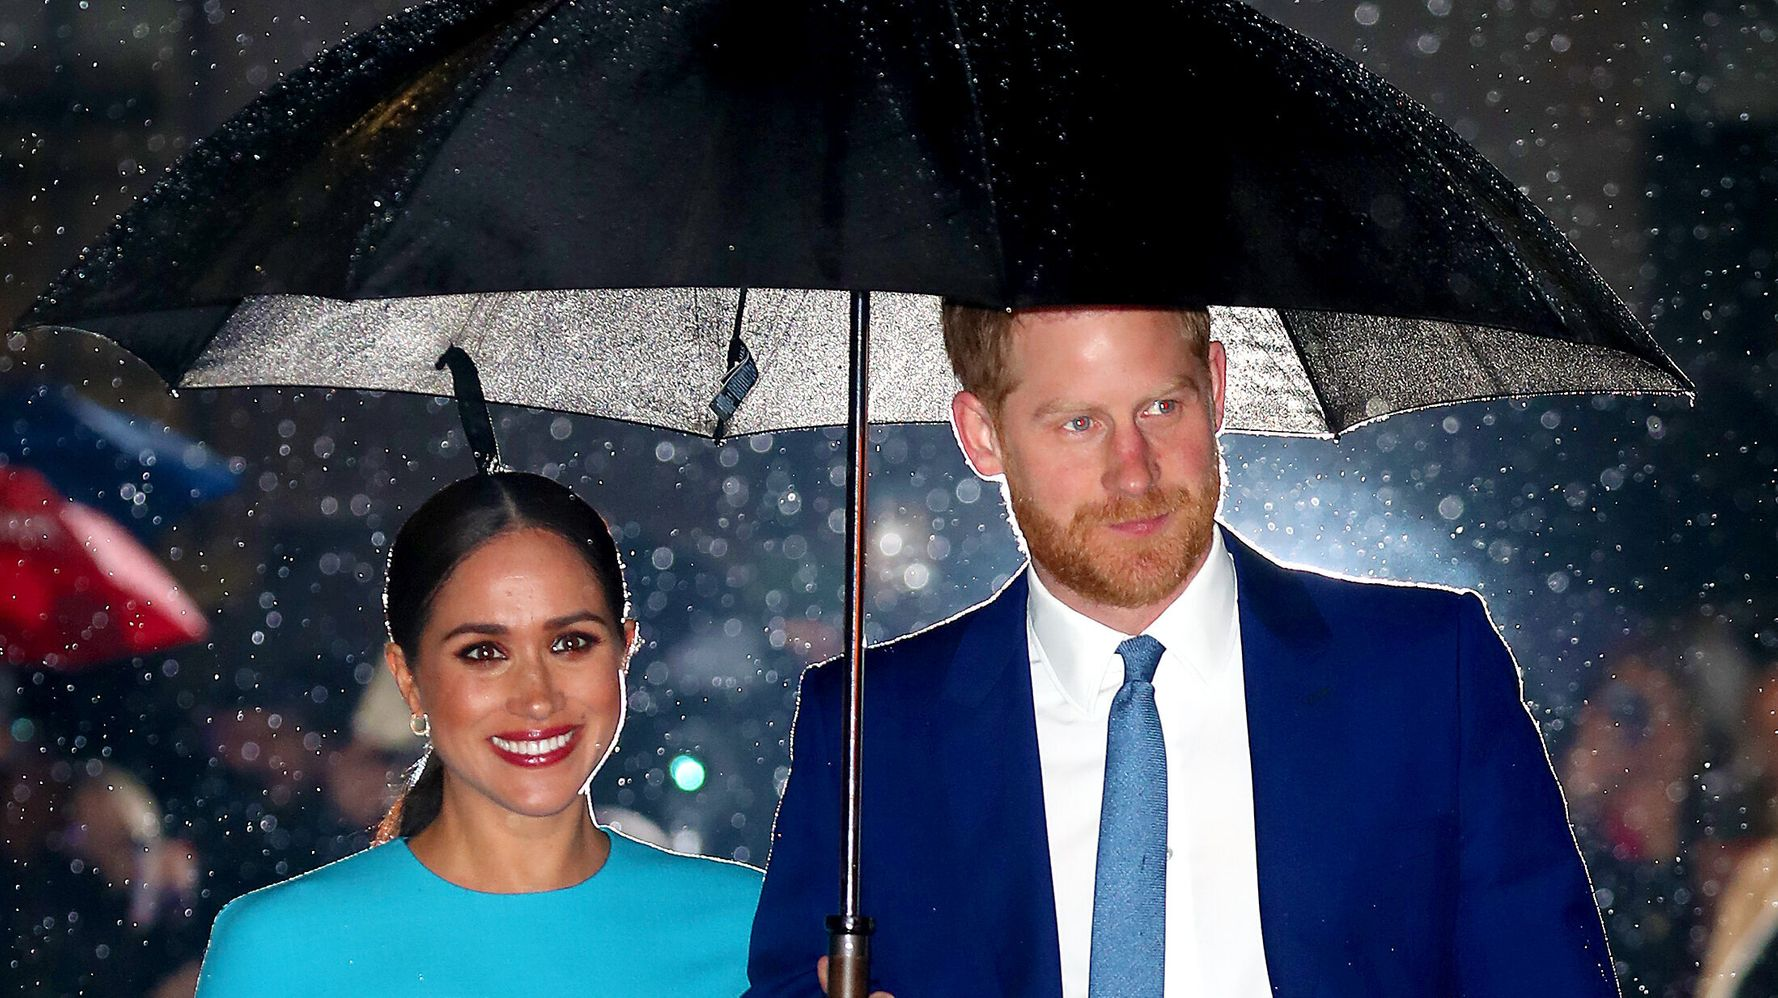 Harry and Meghan's Hollywood Home Is Being Stalked By Drones